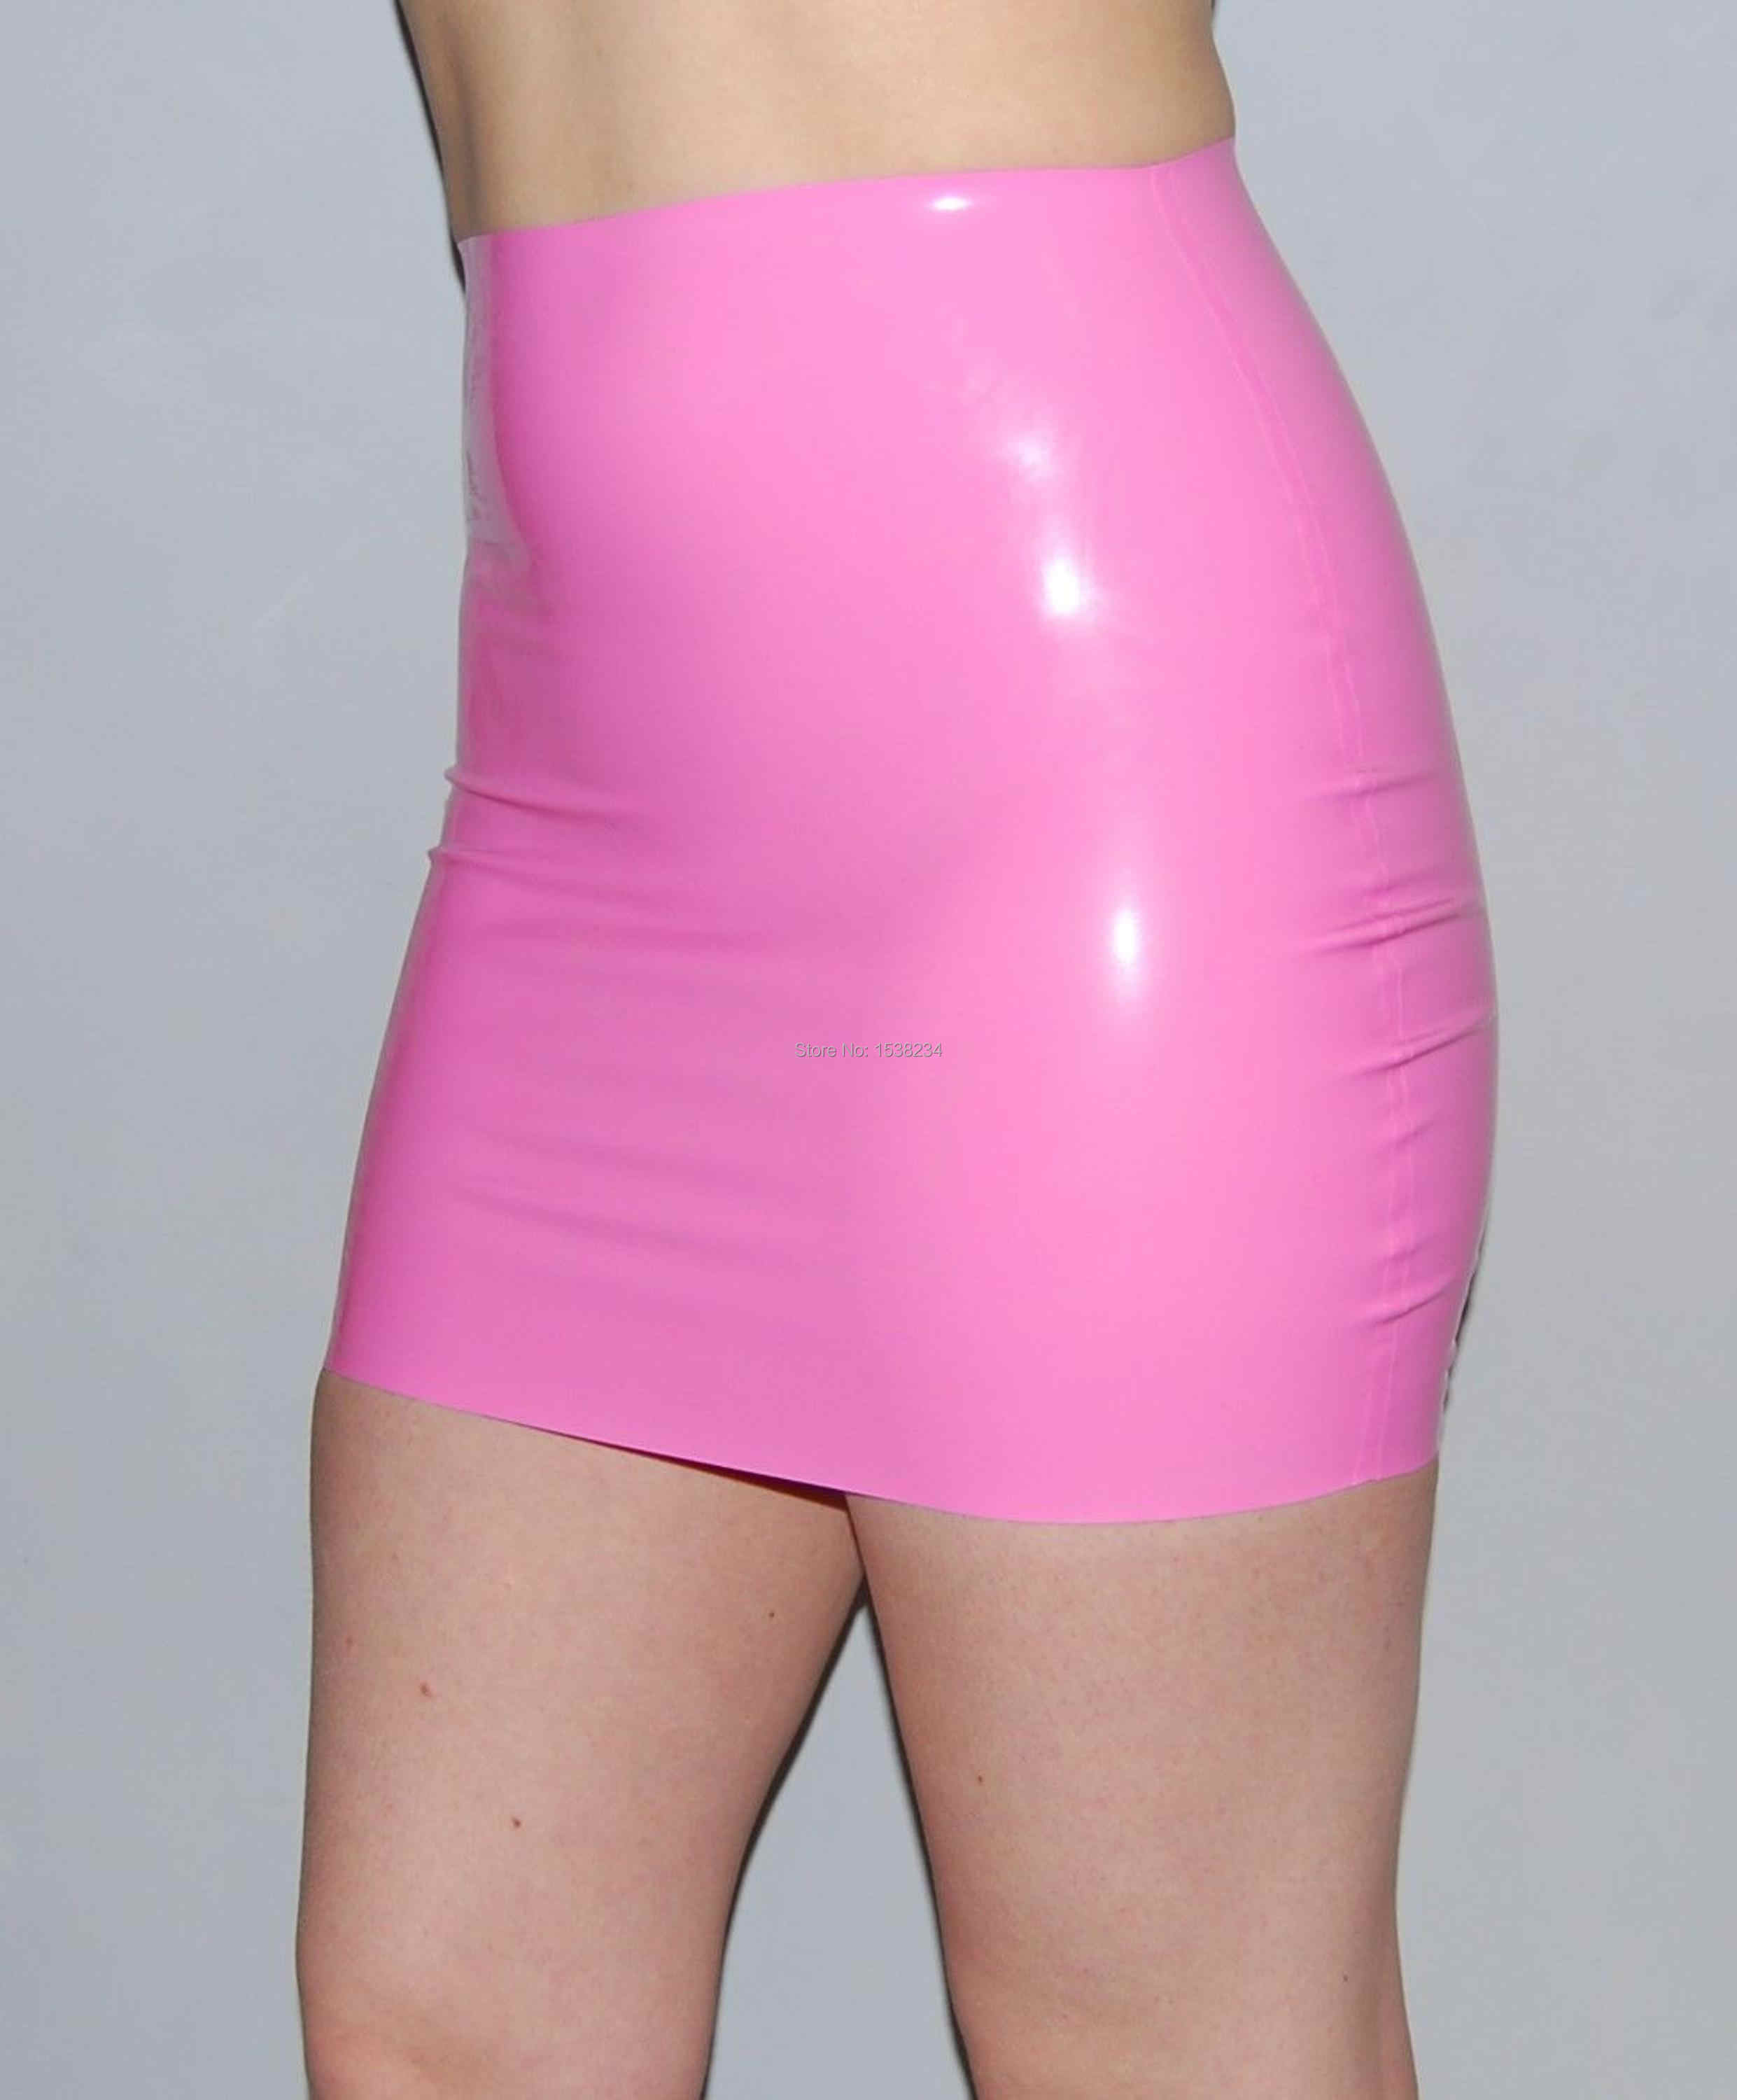 a597b2b44cee5d Detail Feedback Questions about Latex Skirt Women Baby Pink Skirt on  Aliexpress.com | alibaba group